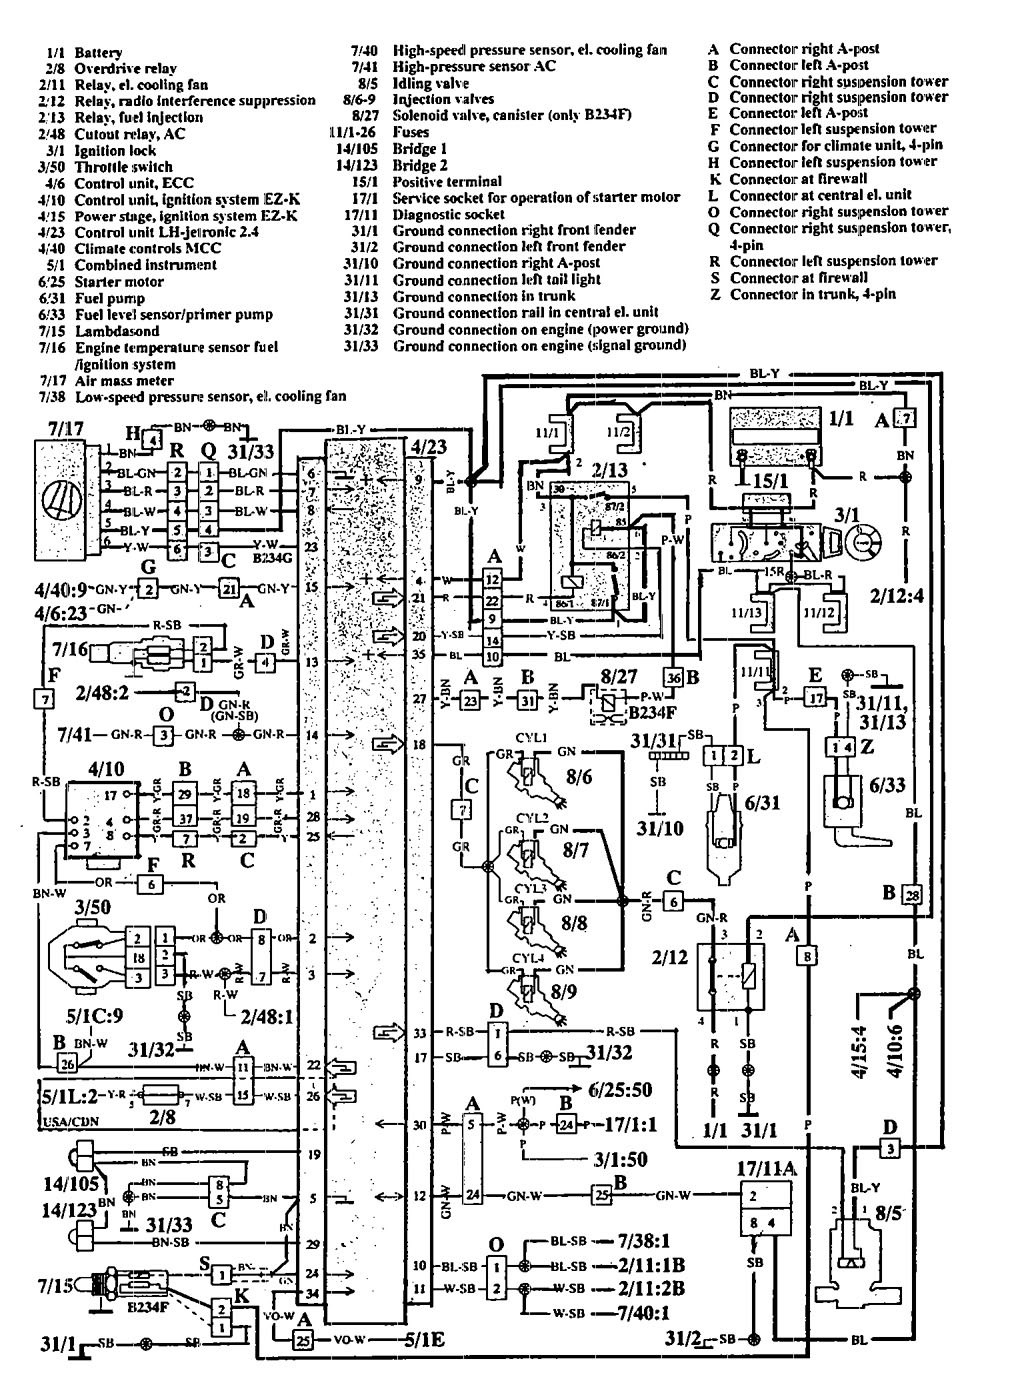 volvo 940 wiring diagram wiring diagram  93 volvo 940 wiring diagram free download #1